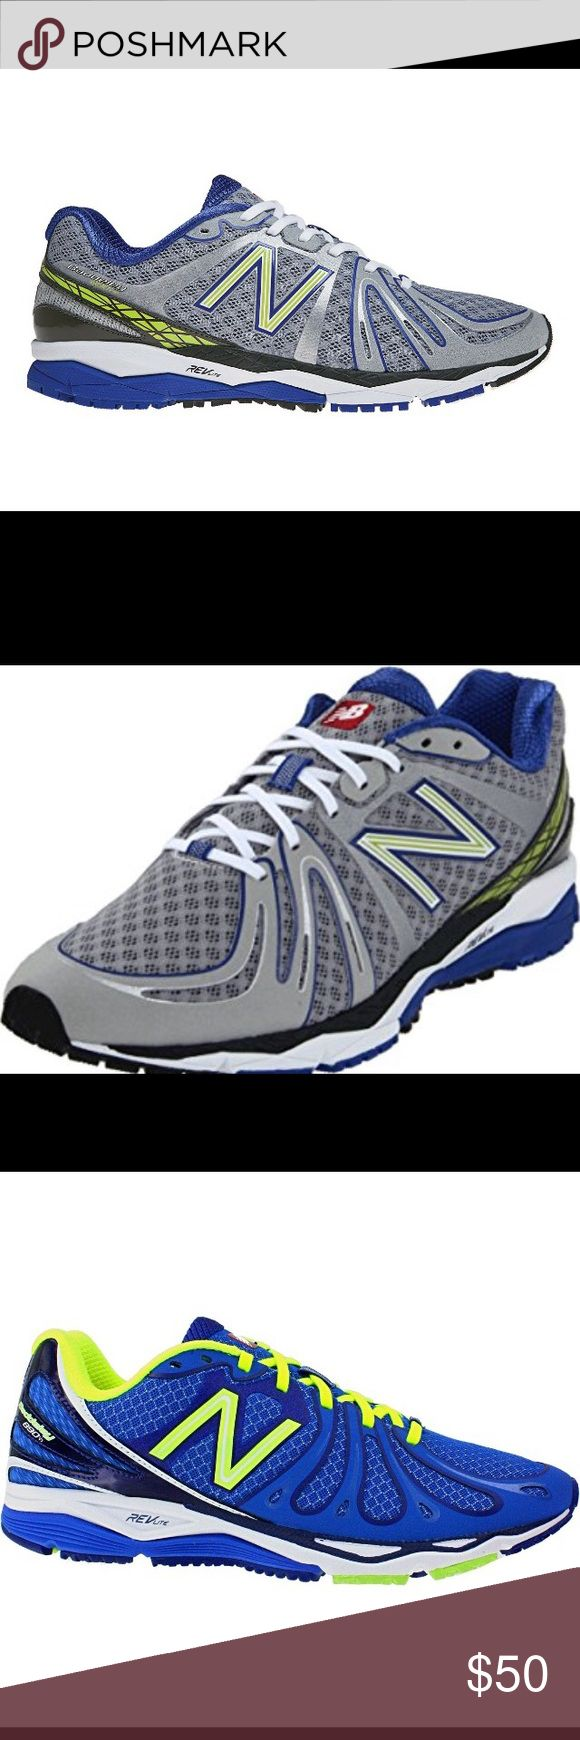 BRAND NEW! New Balance 890 v3 Running sneakers New Balance 890v3 running sneakers, size Men's 11, brand new in box, never worn, original price was $110. Now $49, (9) pairs of Silver available, width D New Balance Shoes Sneakers